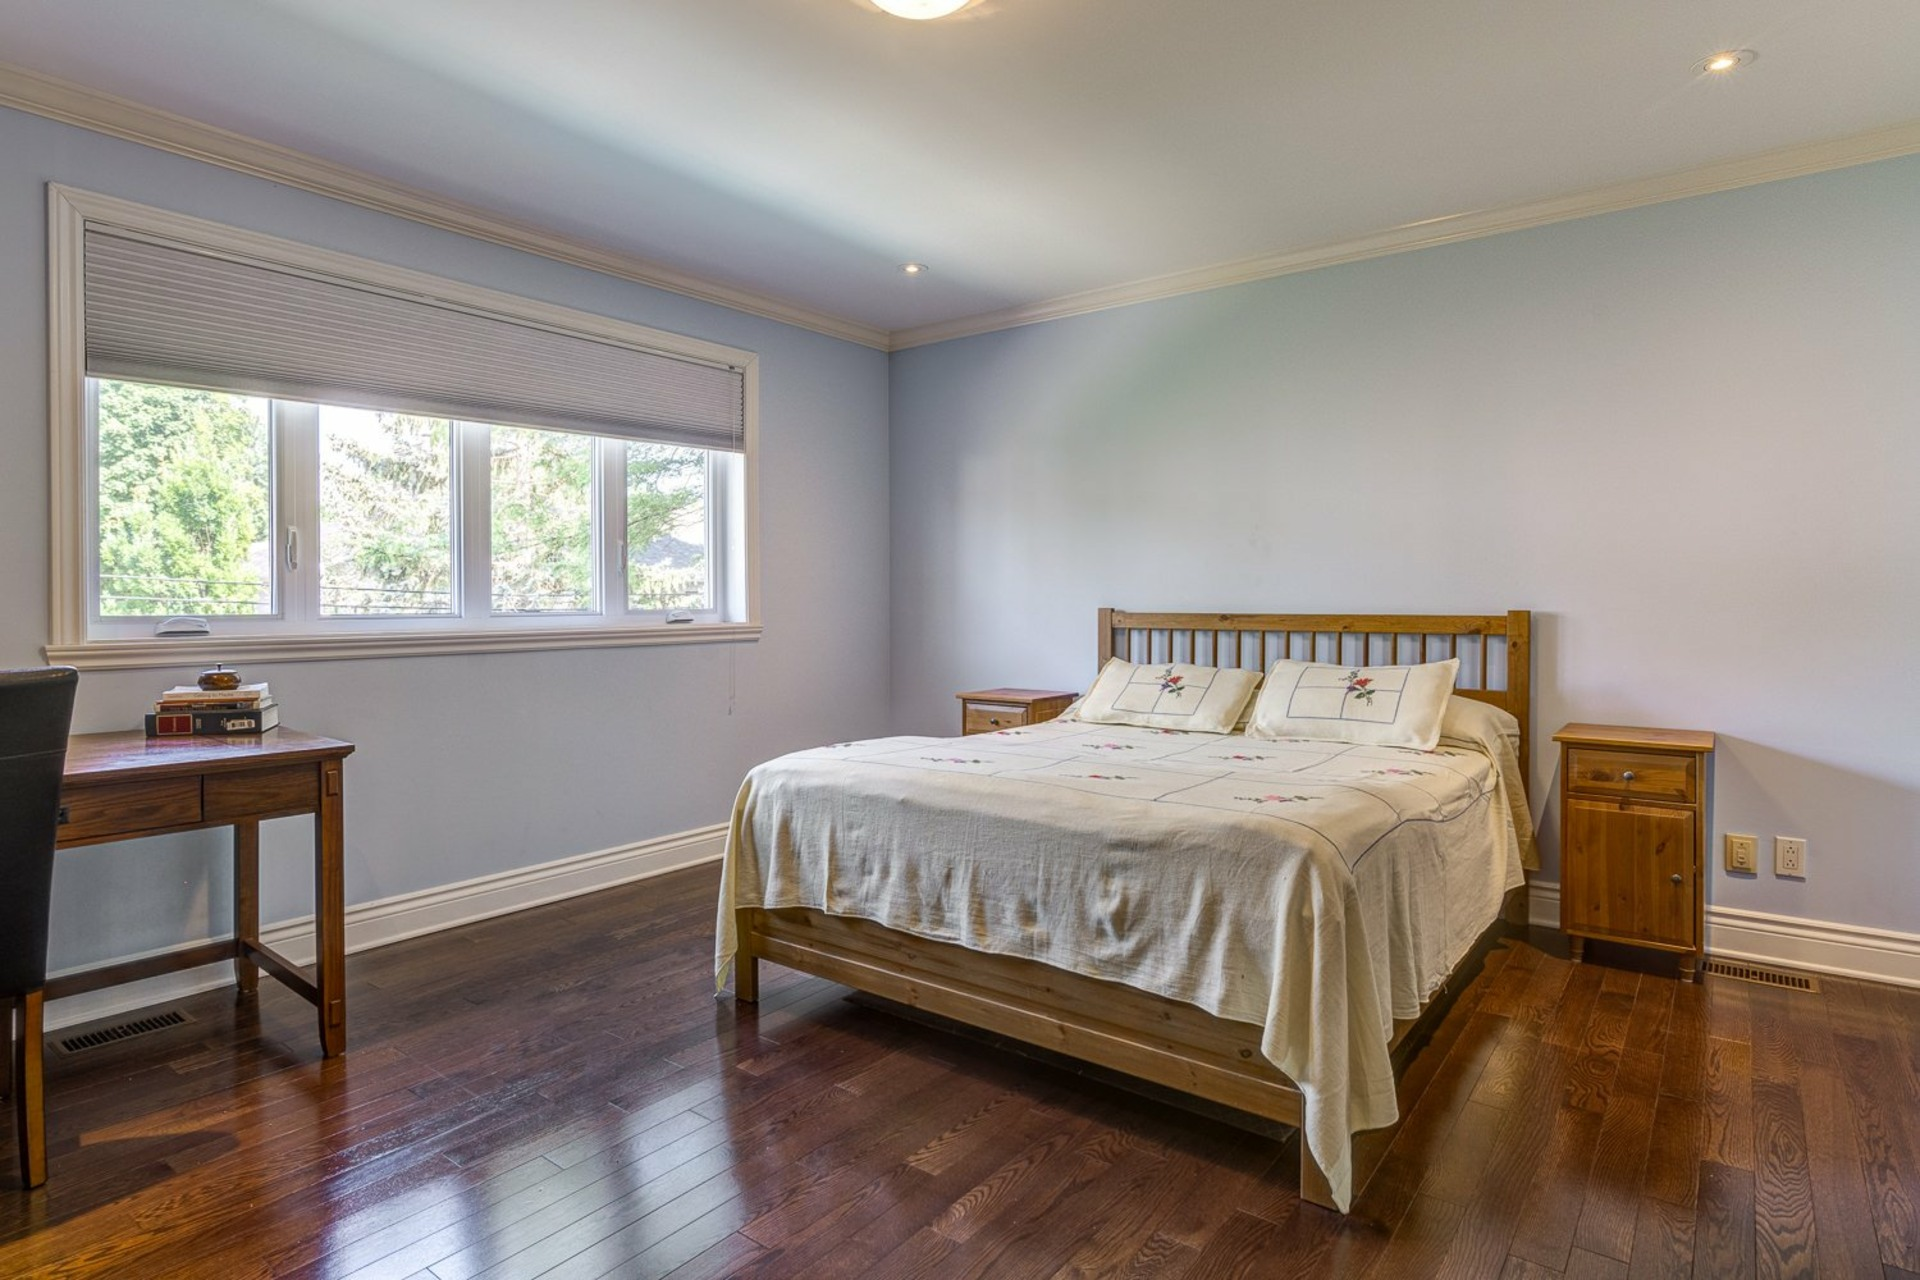 image 19 - House For sale Beaconsfield - 11 rooms